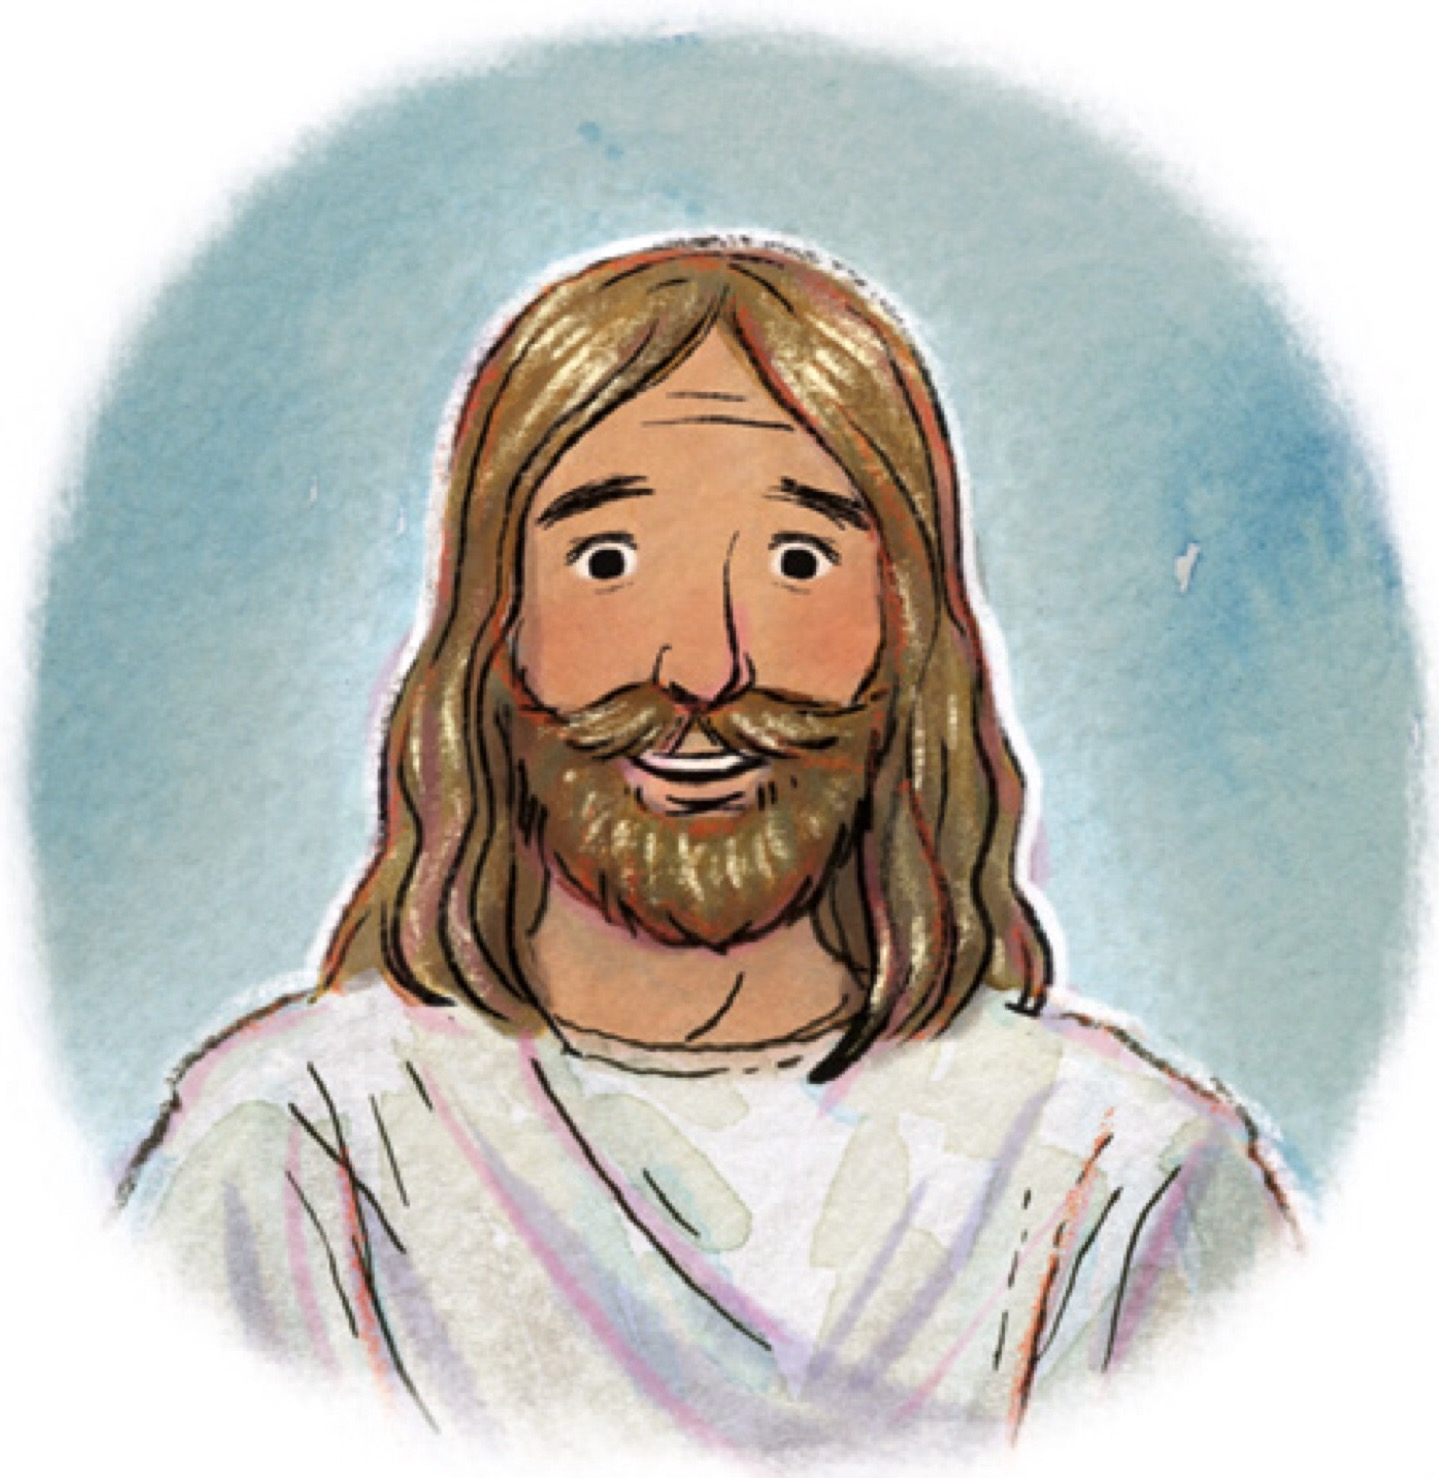 Jesus christ pictures clipart svg freeuse stock Jesus Christ: Clipart - Teaching Children svg freeuse stock